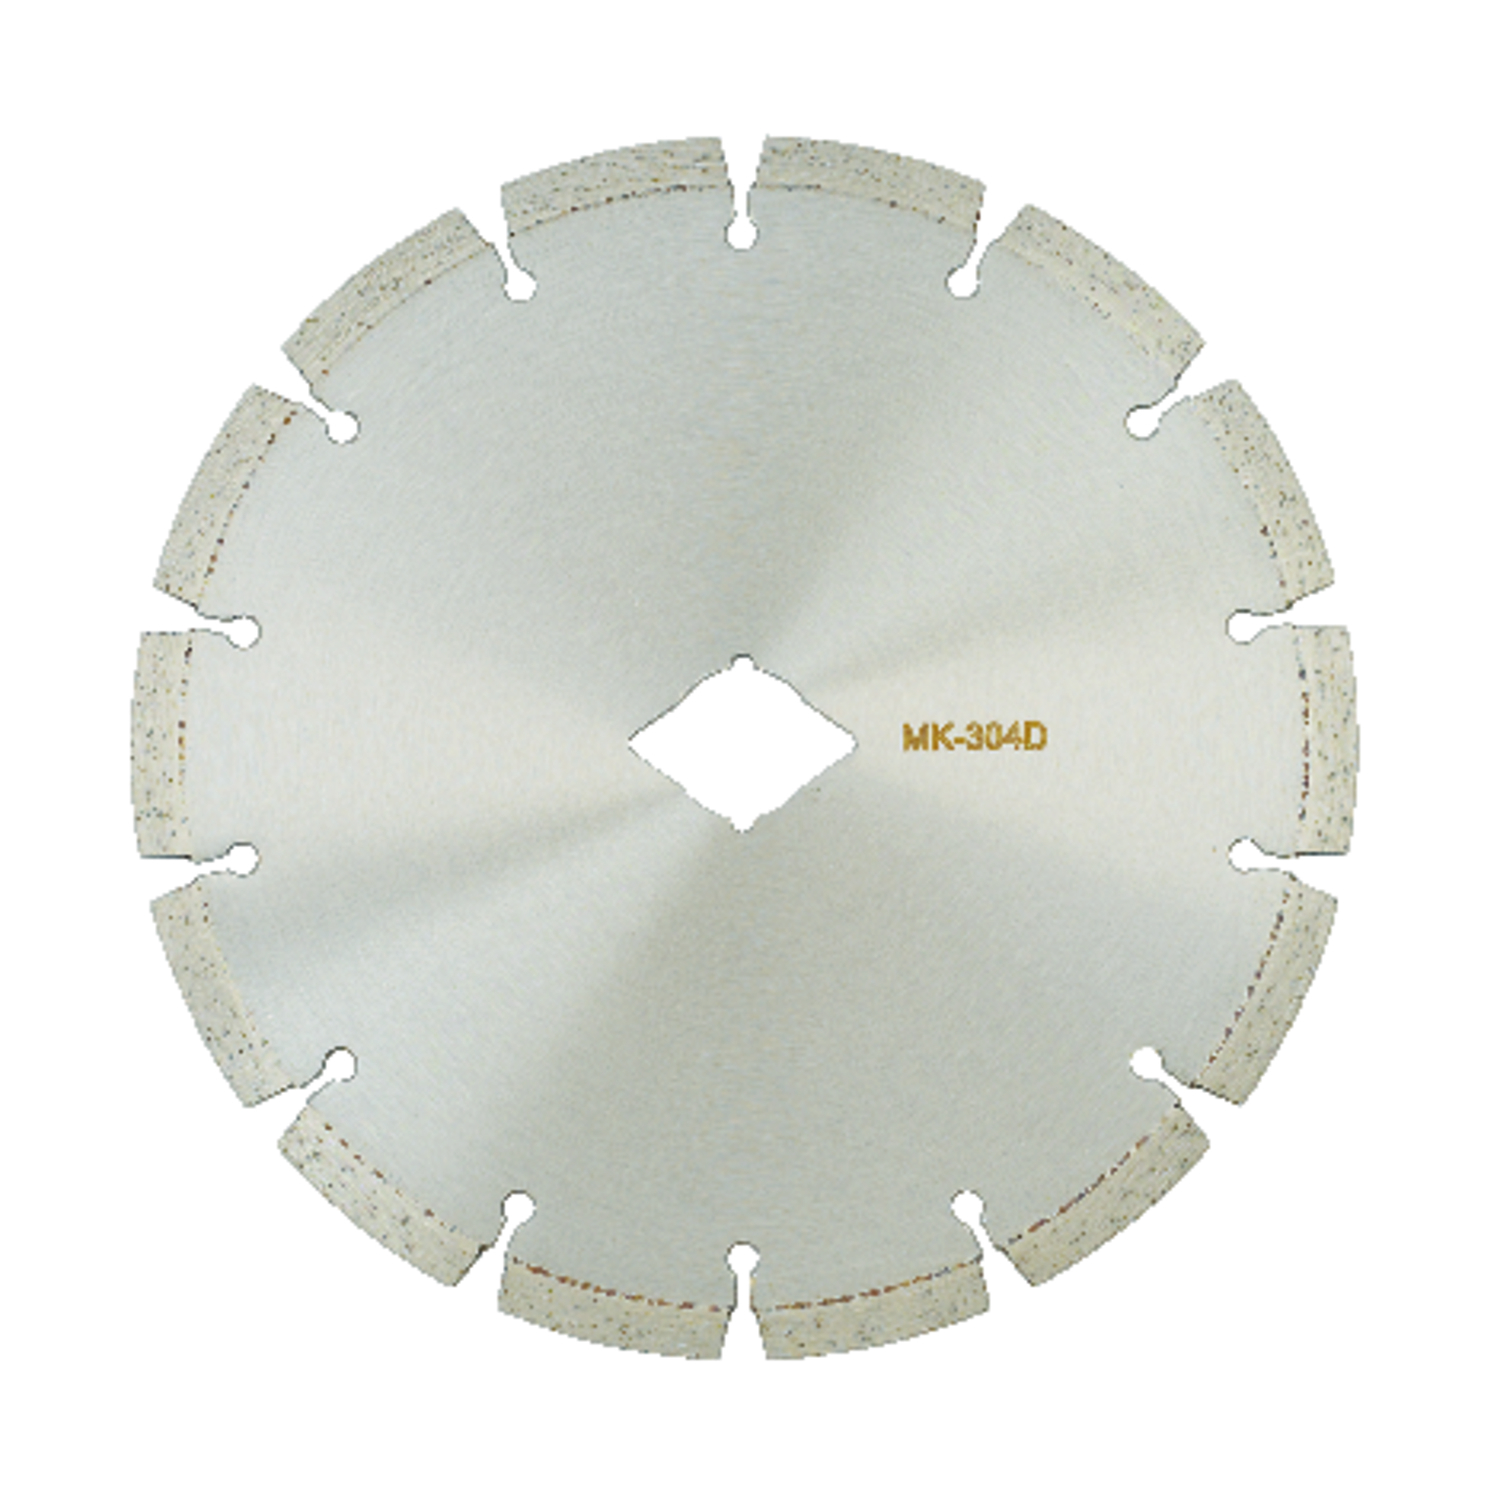 M.K. Diamond  Contractor Plus  Segmented Rim Circular Saw Blade  7/8  1 pk 7  Carbide Tip Diamond